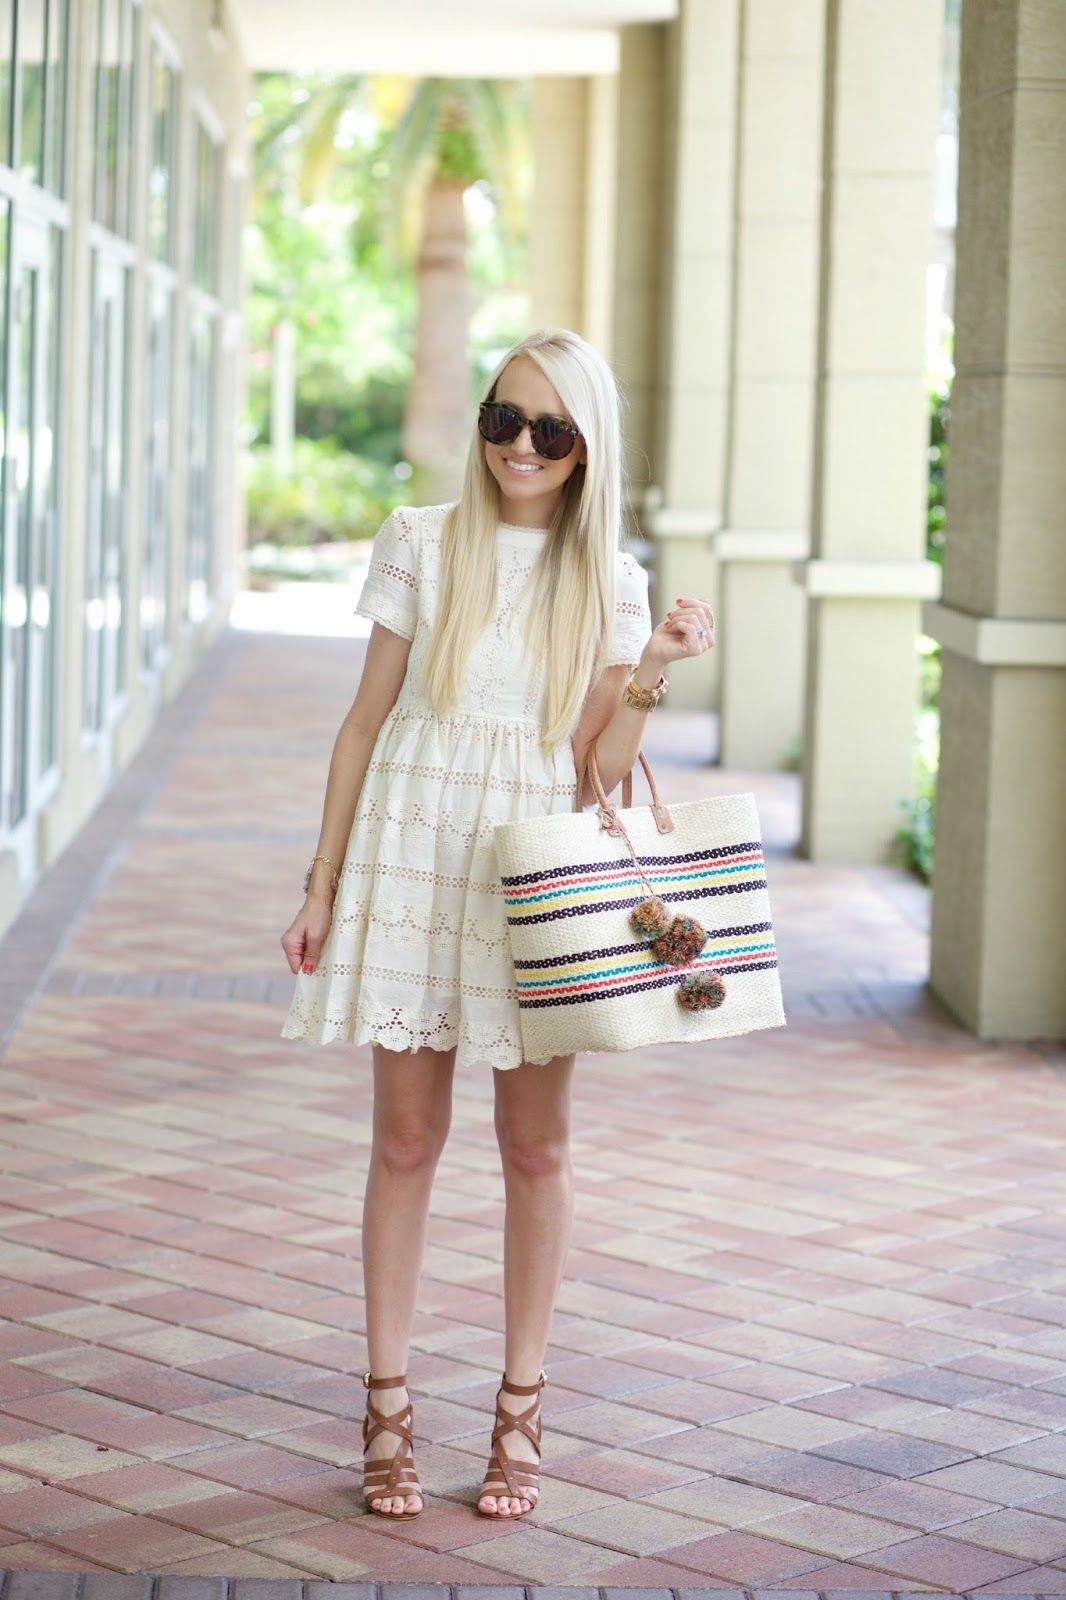 A Spoonful of Style: Lace BabyDoll Dress